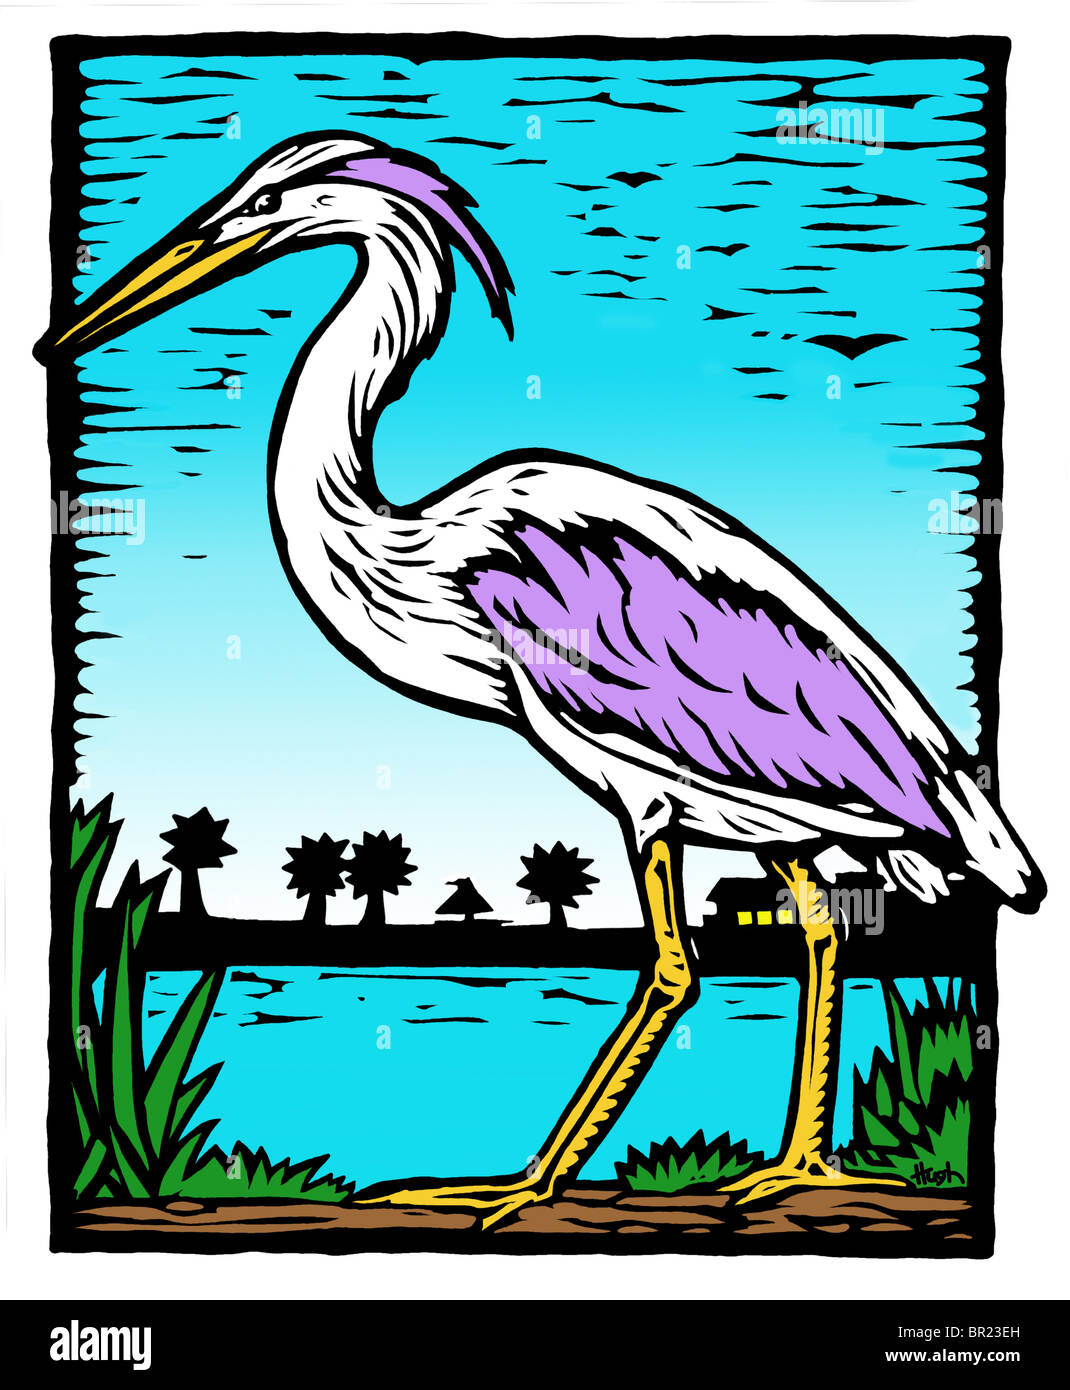 A drawing of a heron - Stock Image